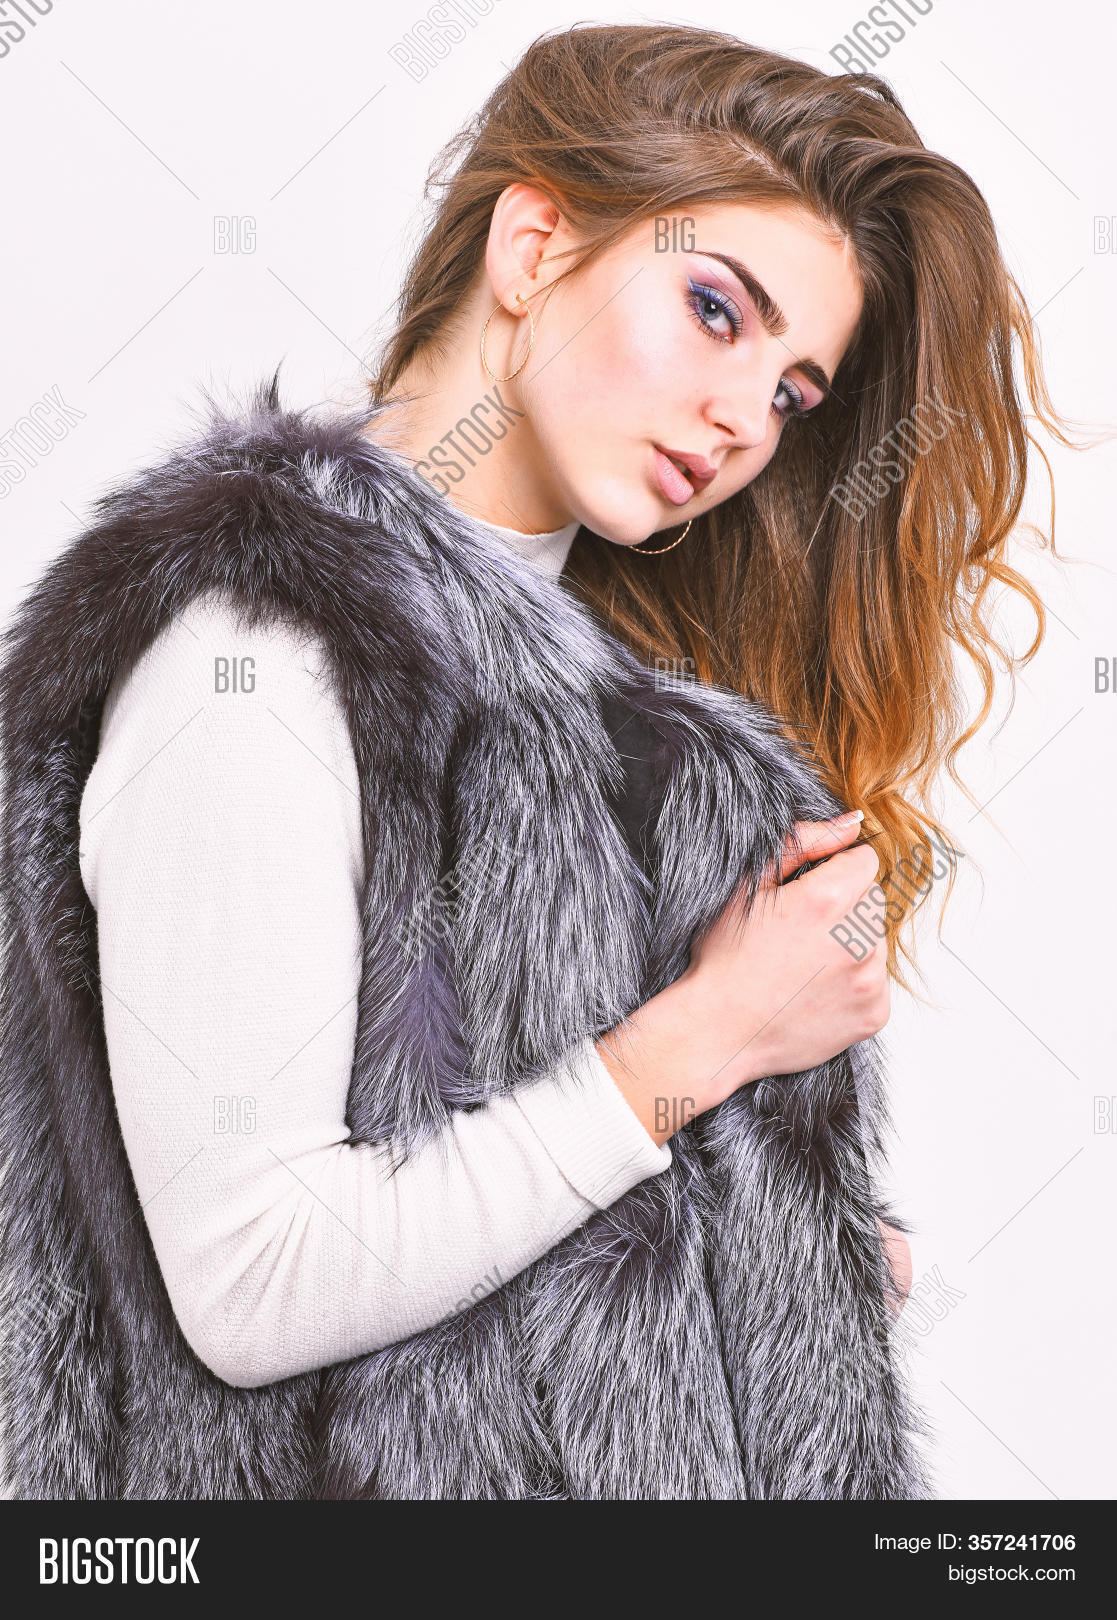 Boutique Selling Fur Image Photo Free Trial Bigstock